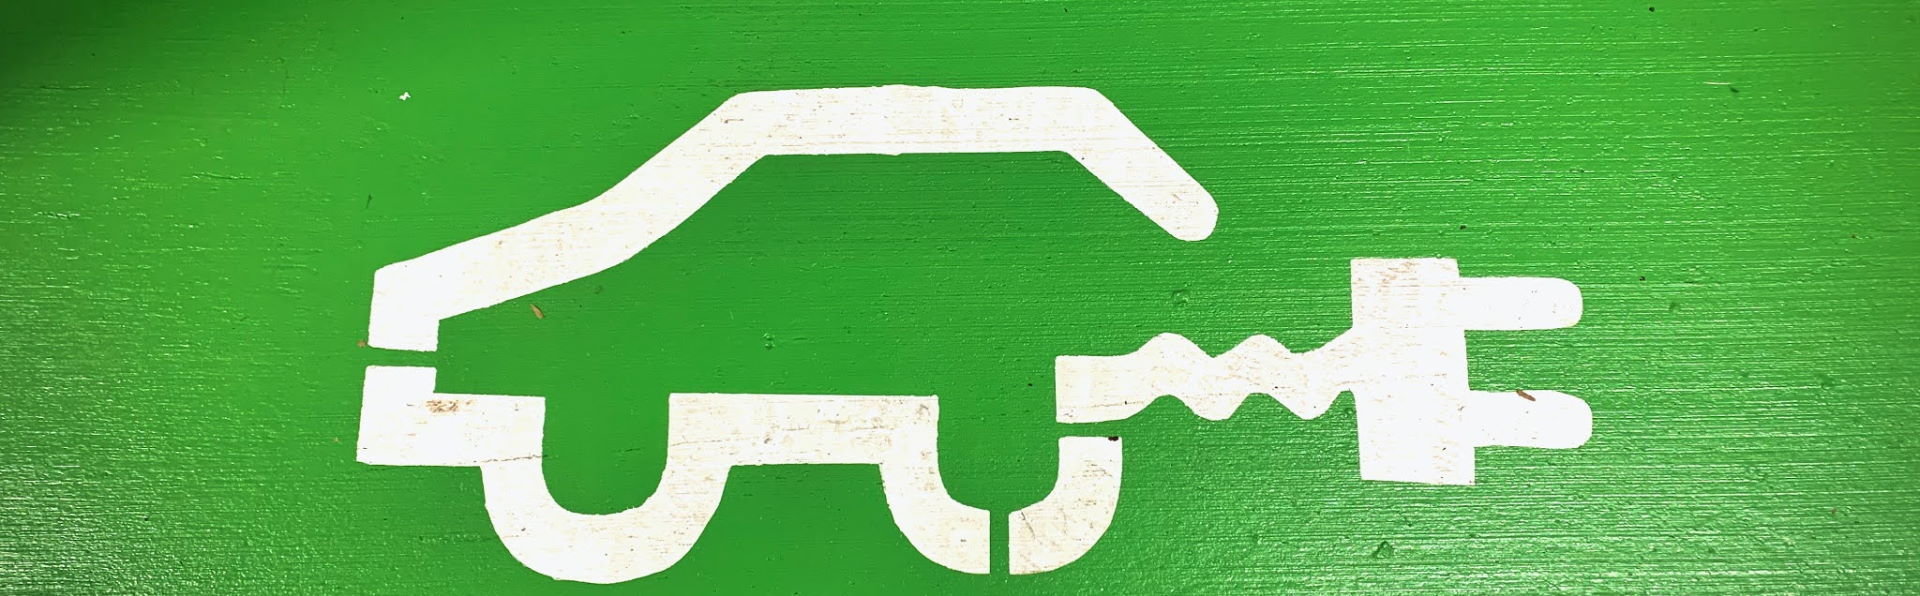 Things to consider if you want to go electric